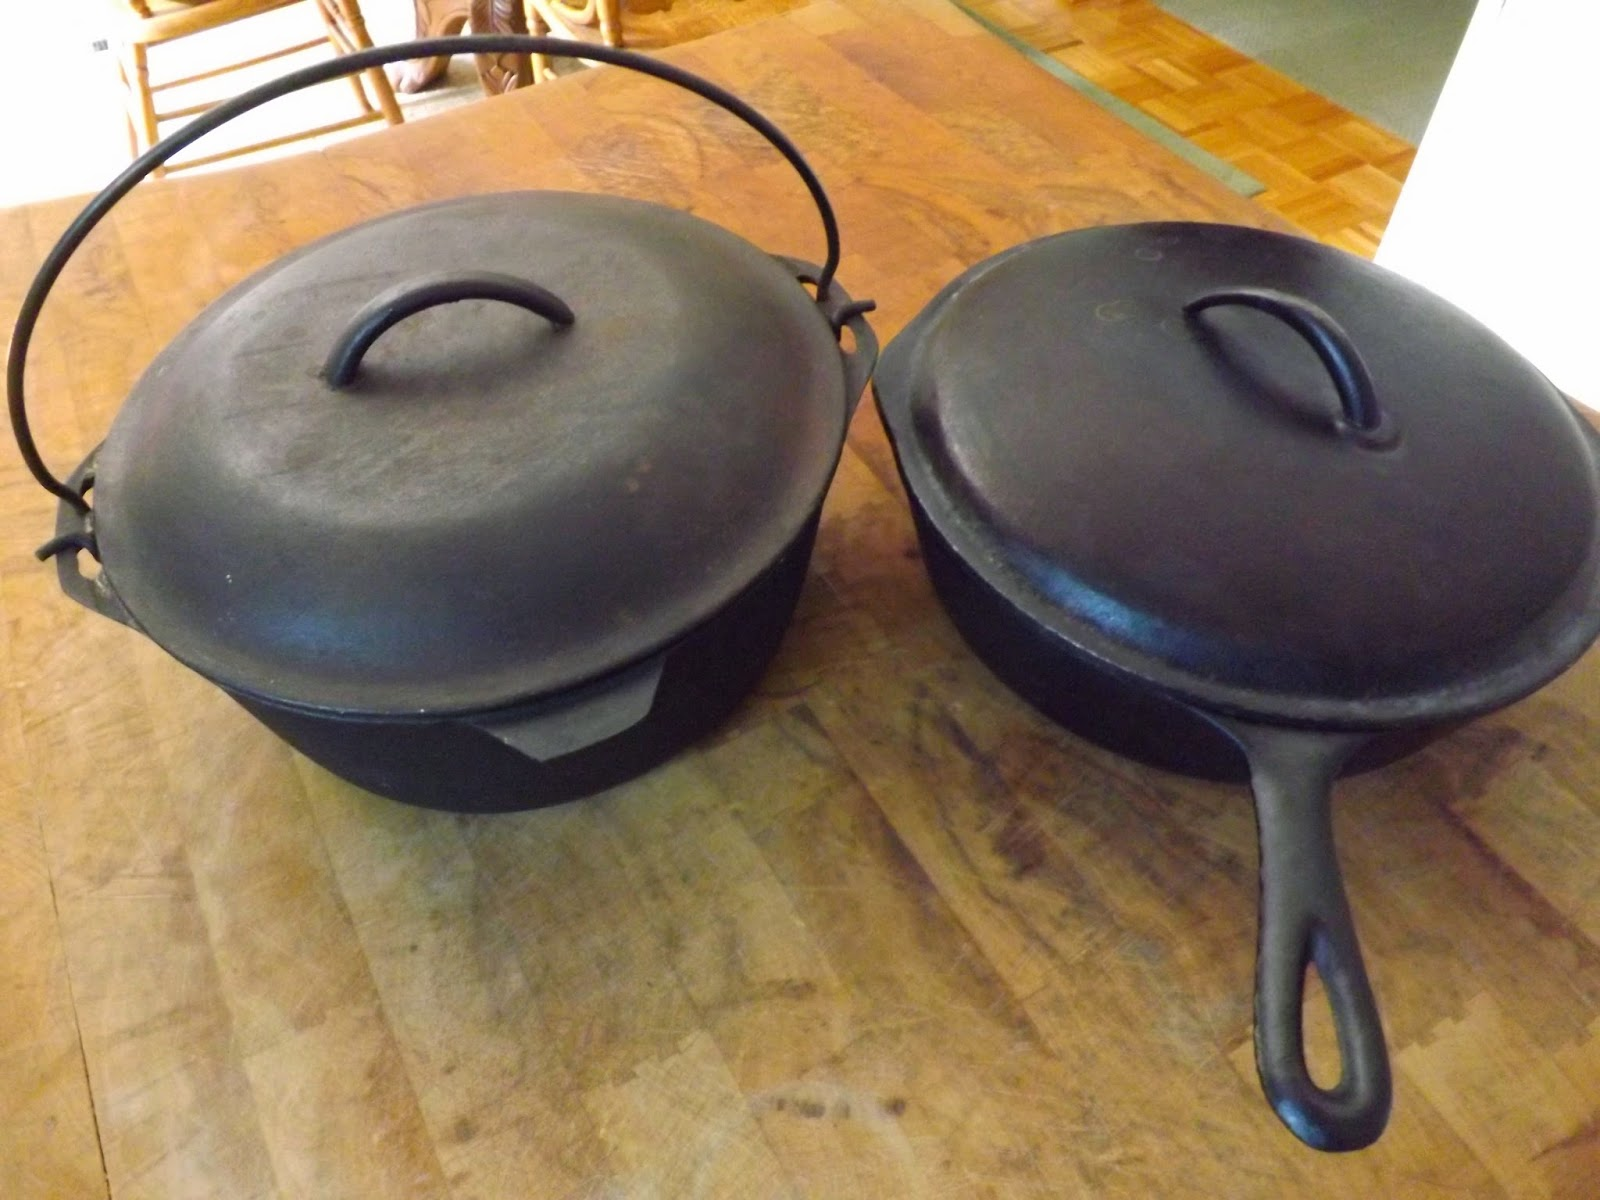 Heirloom Cast Iron Cookware Makes Food Taste Better